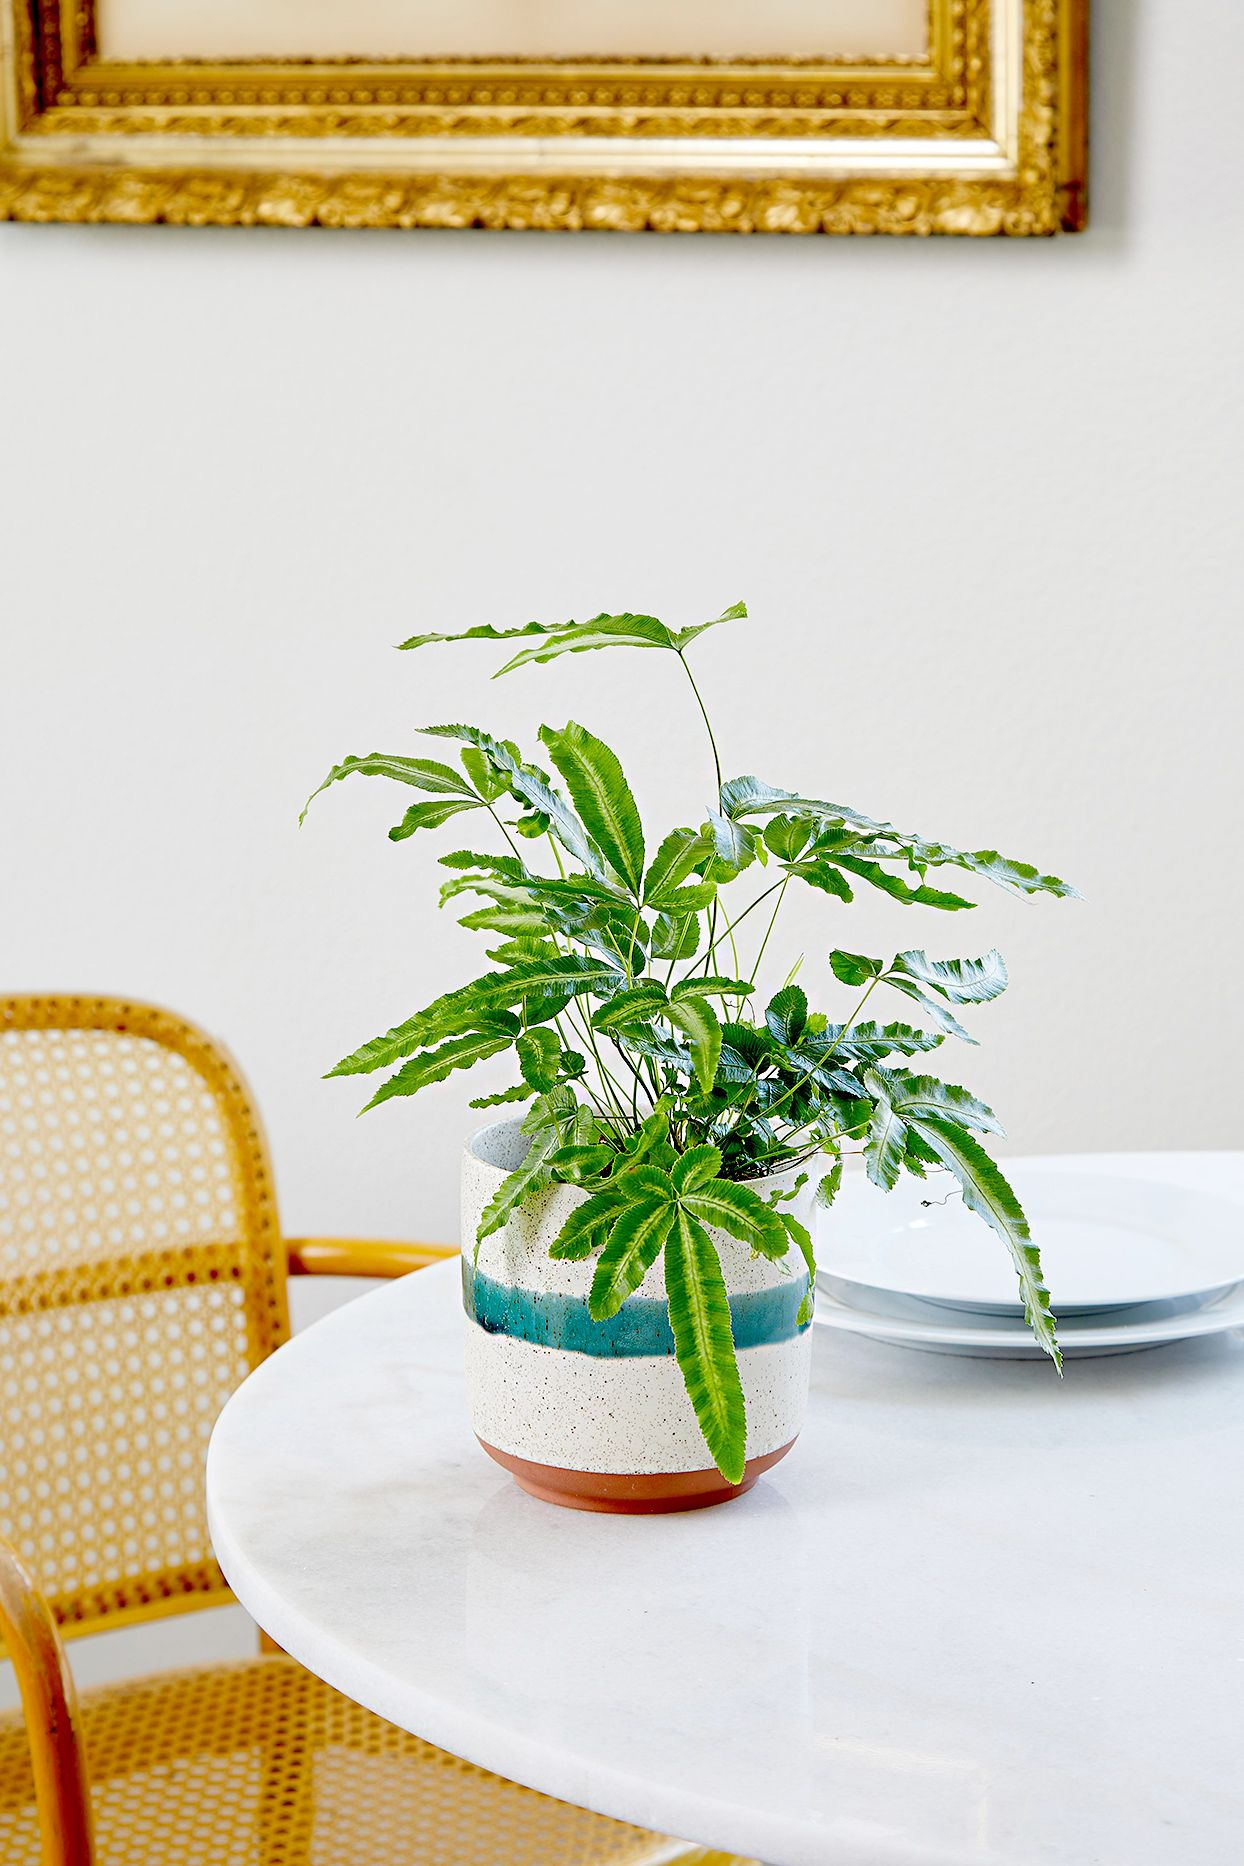 5 expert tips you need to know for growing indoor ferns